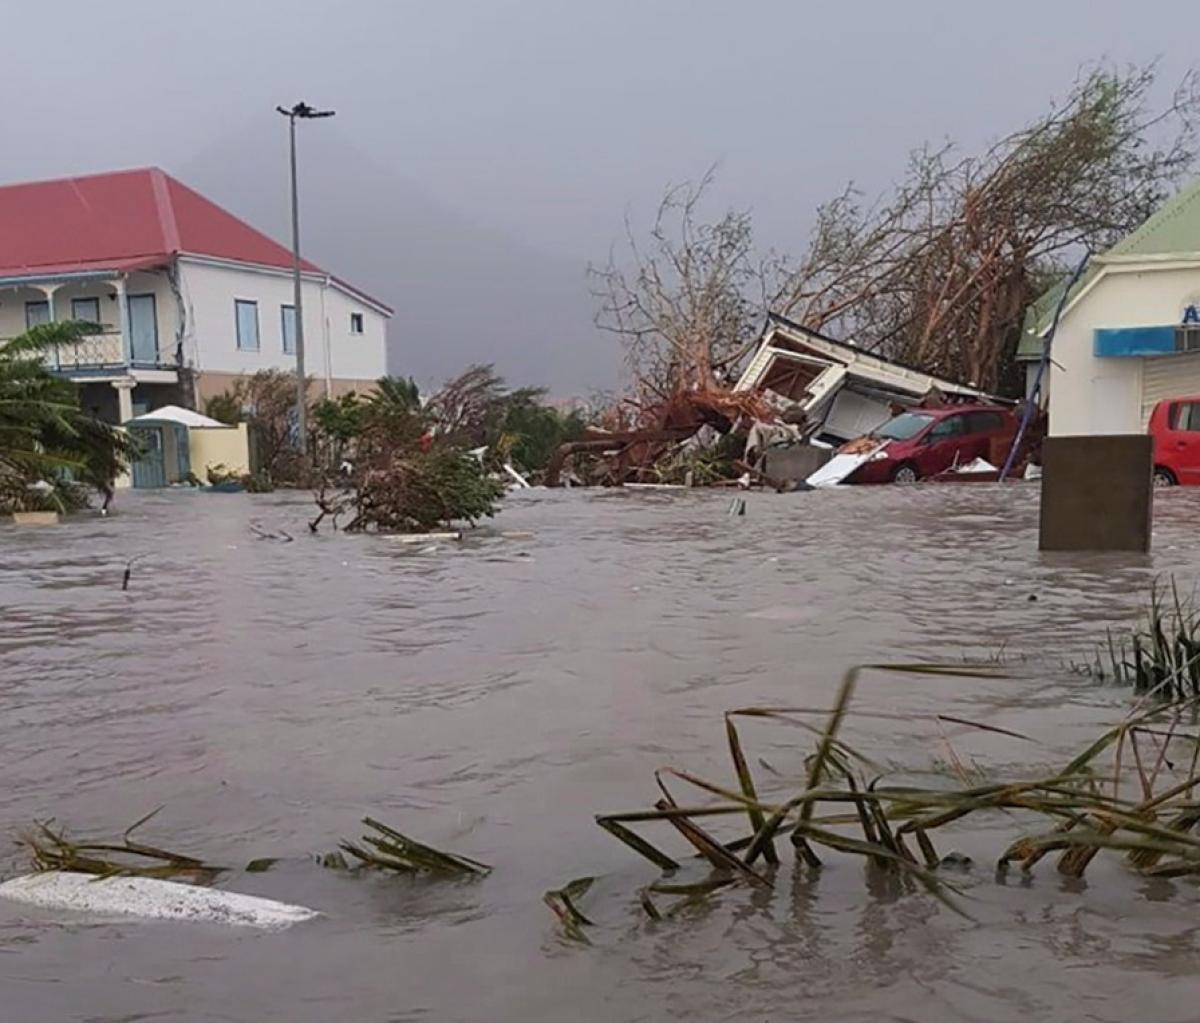 A flooded street on the island of St Martin / Photo: AFP/RCI Guadeloupe/Rinsey Xieng